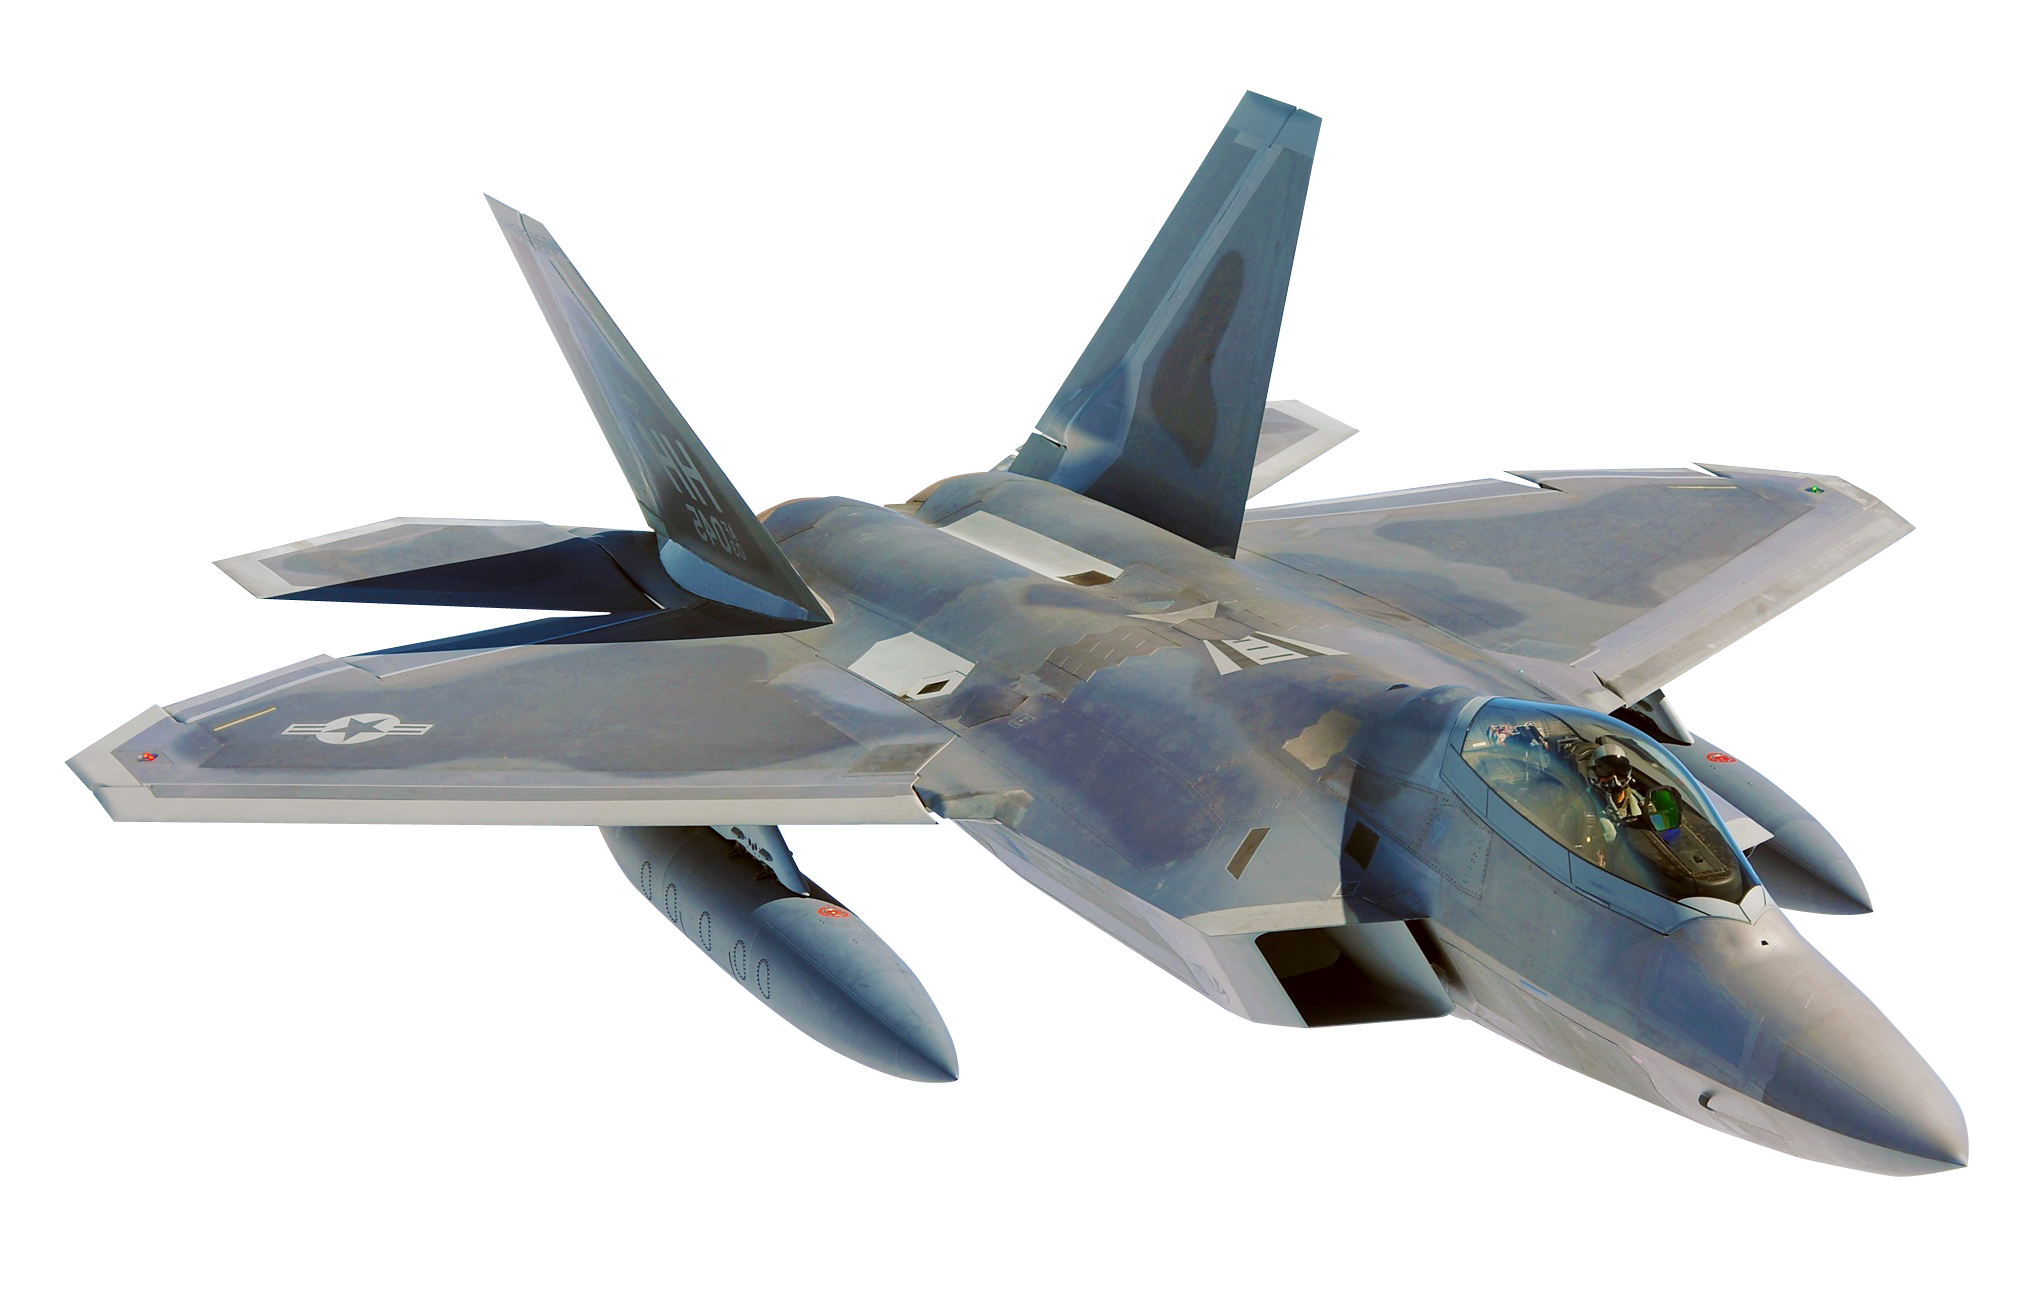 Jet fighter aircraft PNG images free download.